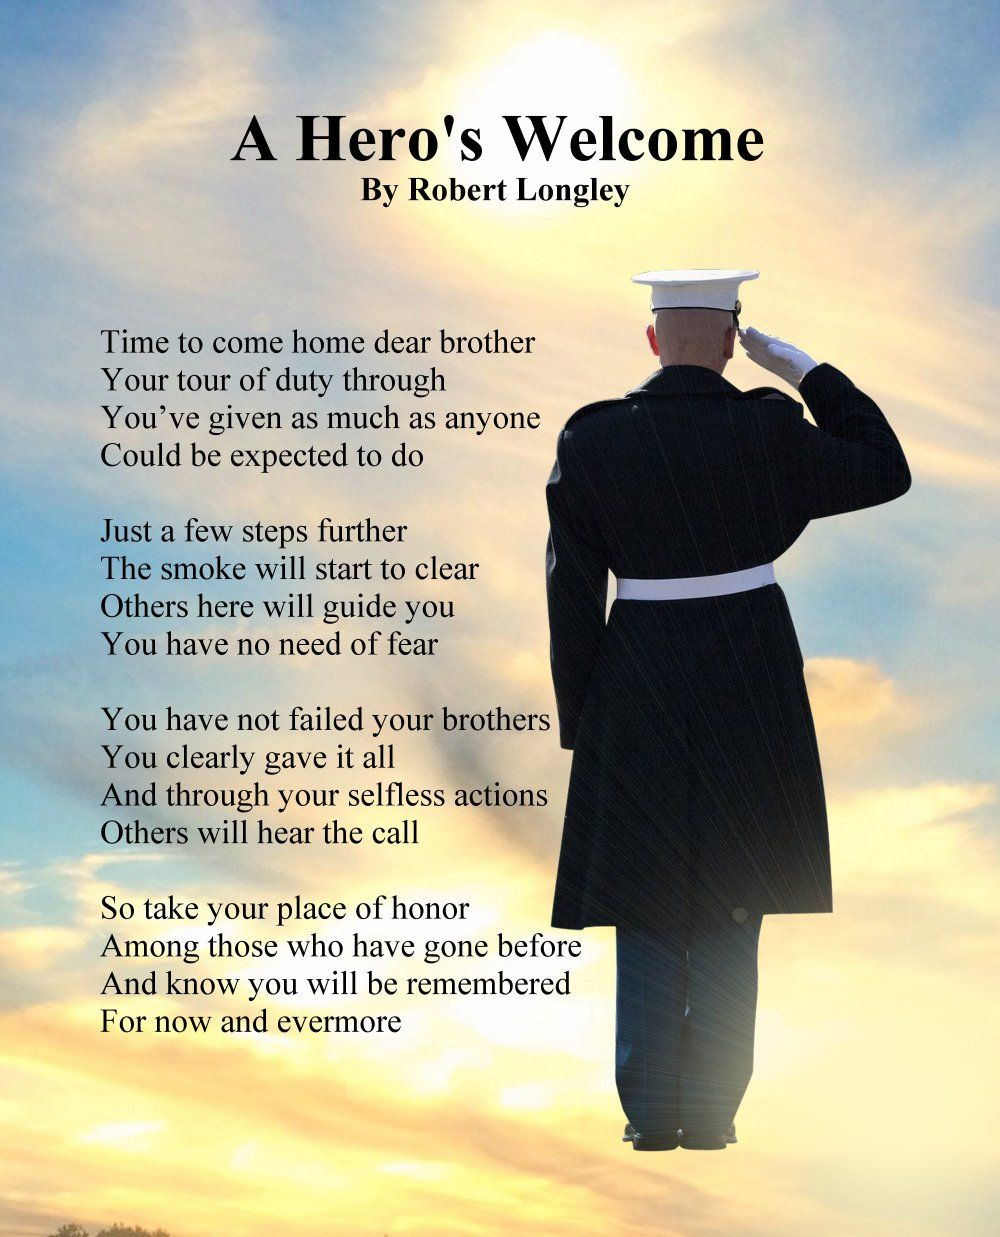 Memorial Day Christian Inspirational Quotes: A Hero's Welcome - Marines - Memorial Poem